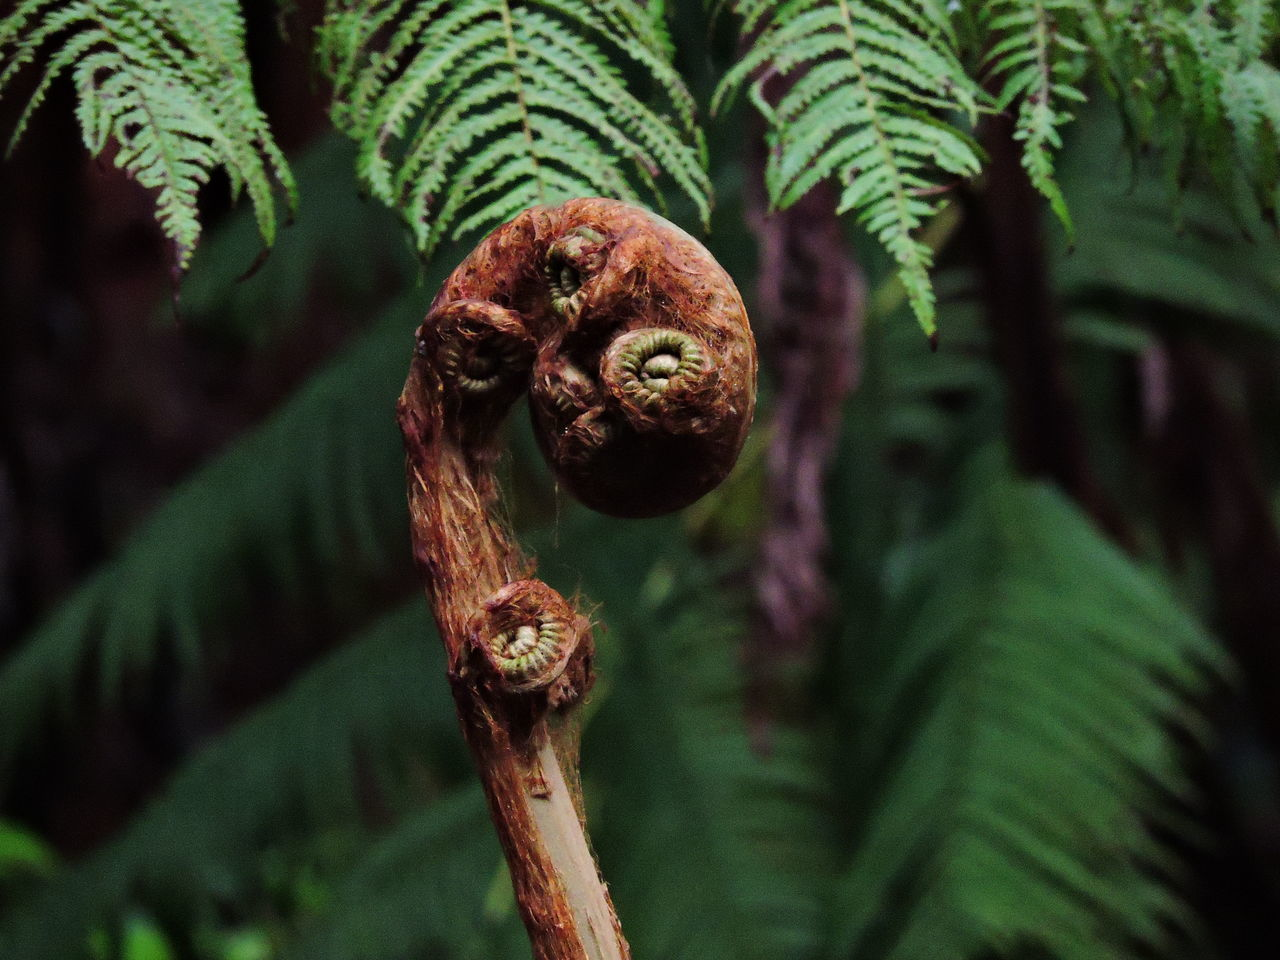 Beauty In Nature Close-up Day Fern Focus On Foreground Fragility Green Color Growth Leaf Nature No People Outdoors Plant Tree